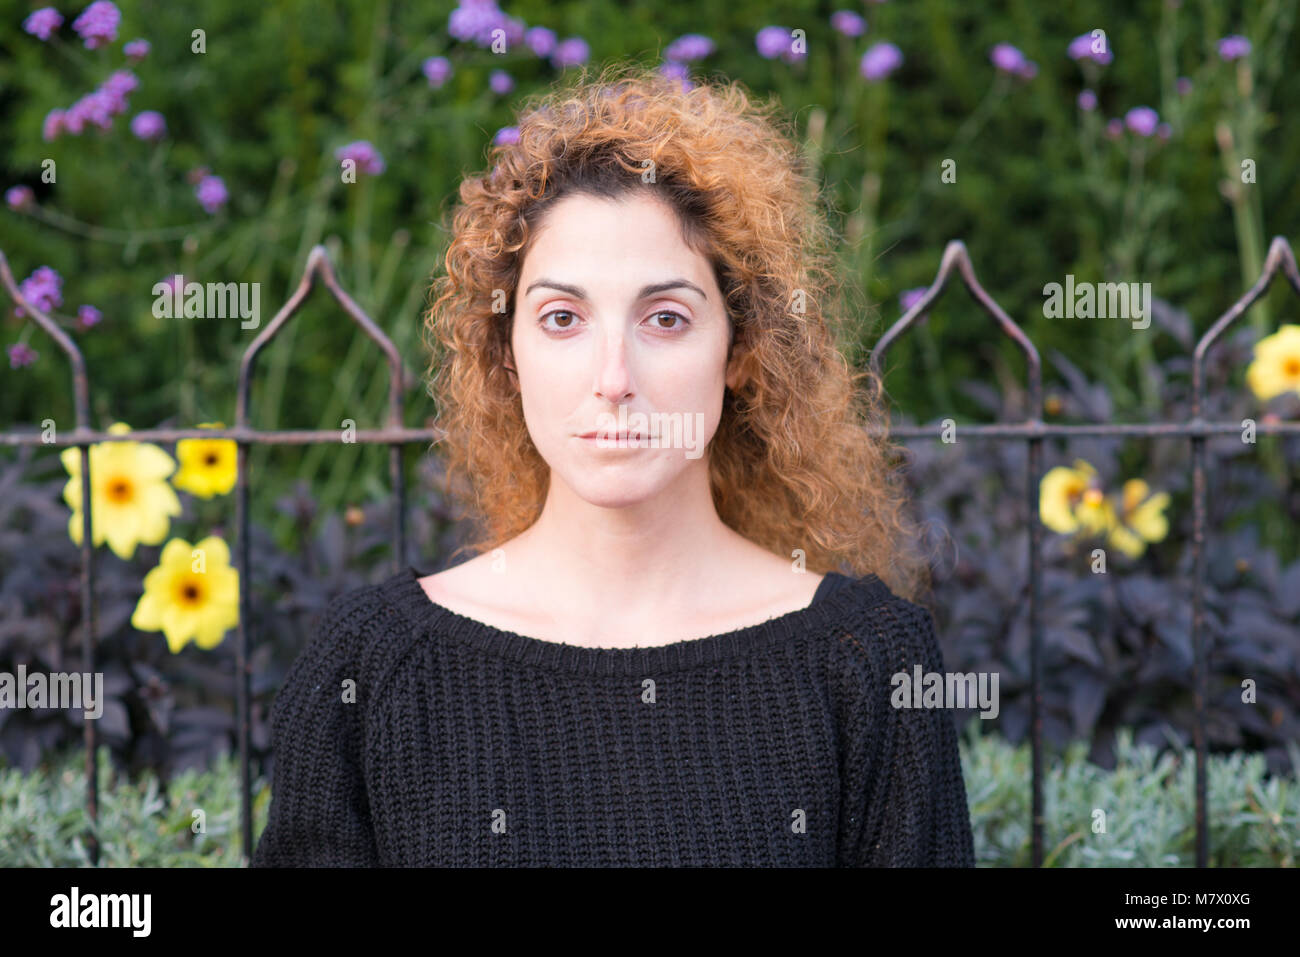 UK Stratford upon Avon 12th October 2017 woman with red curly hair blowing in front of  face and autumn fall flowers - Stock Image